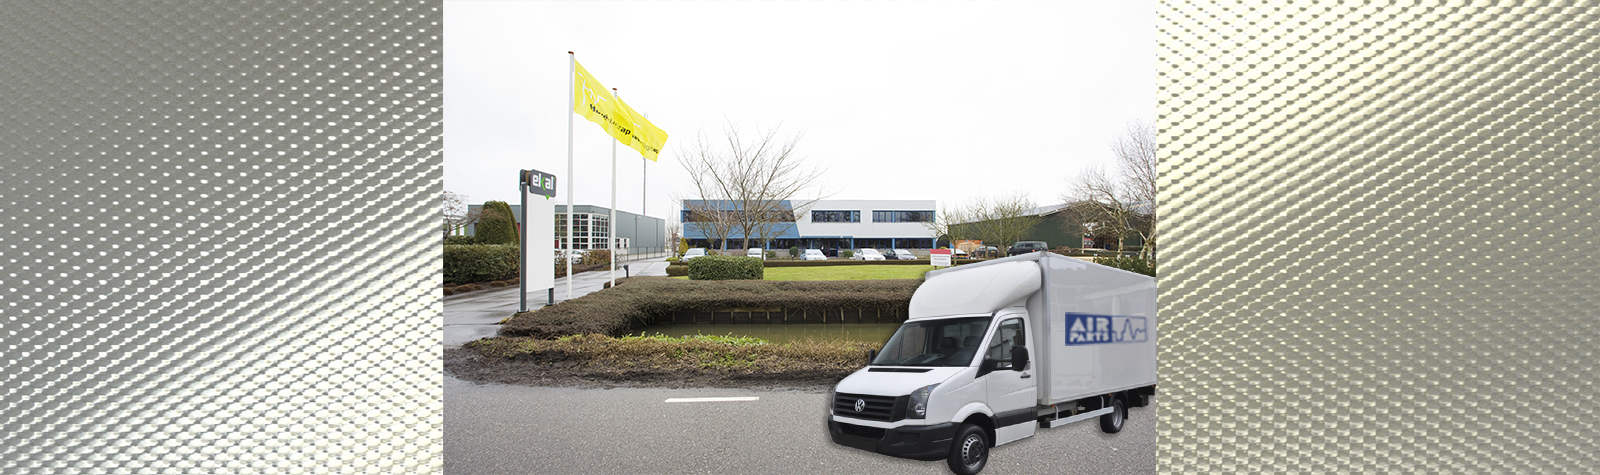 Air-Parts BV is verhuisd naar Molenaarsgraaf